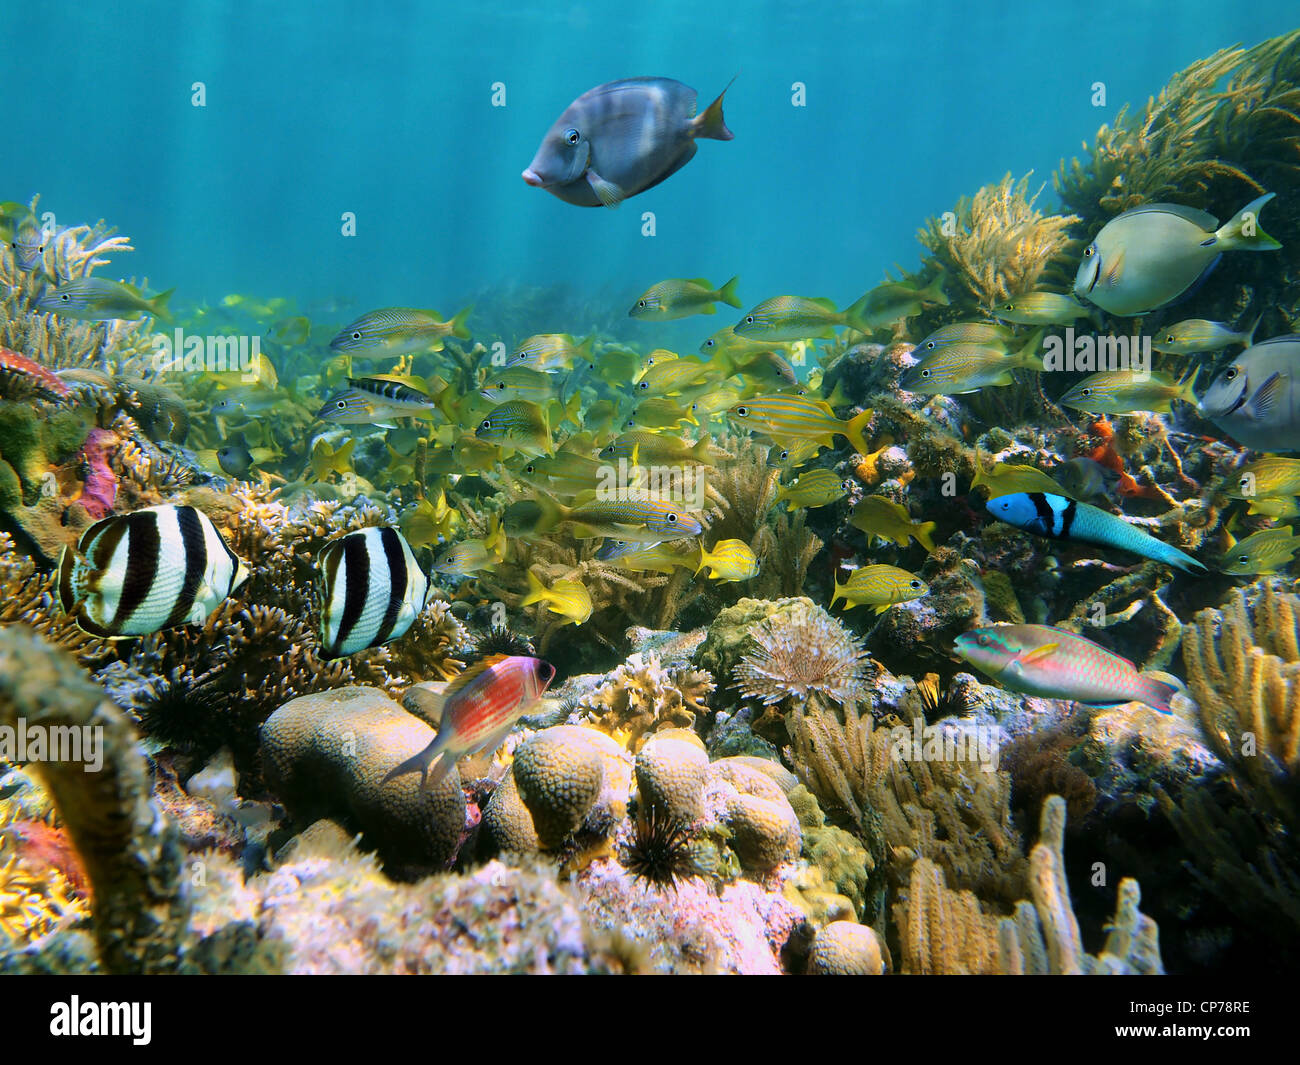 Coral reef with school of colorful tropical fish underwater in the Caribbean sea - Stock Image